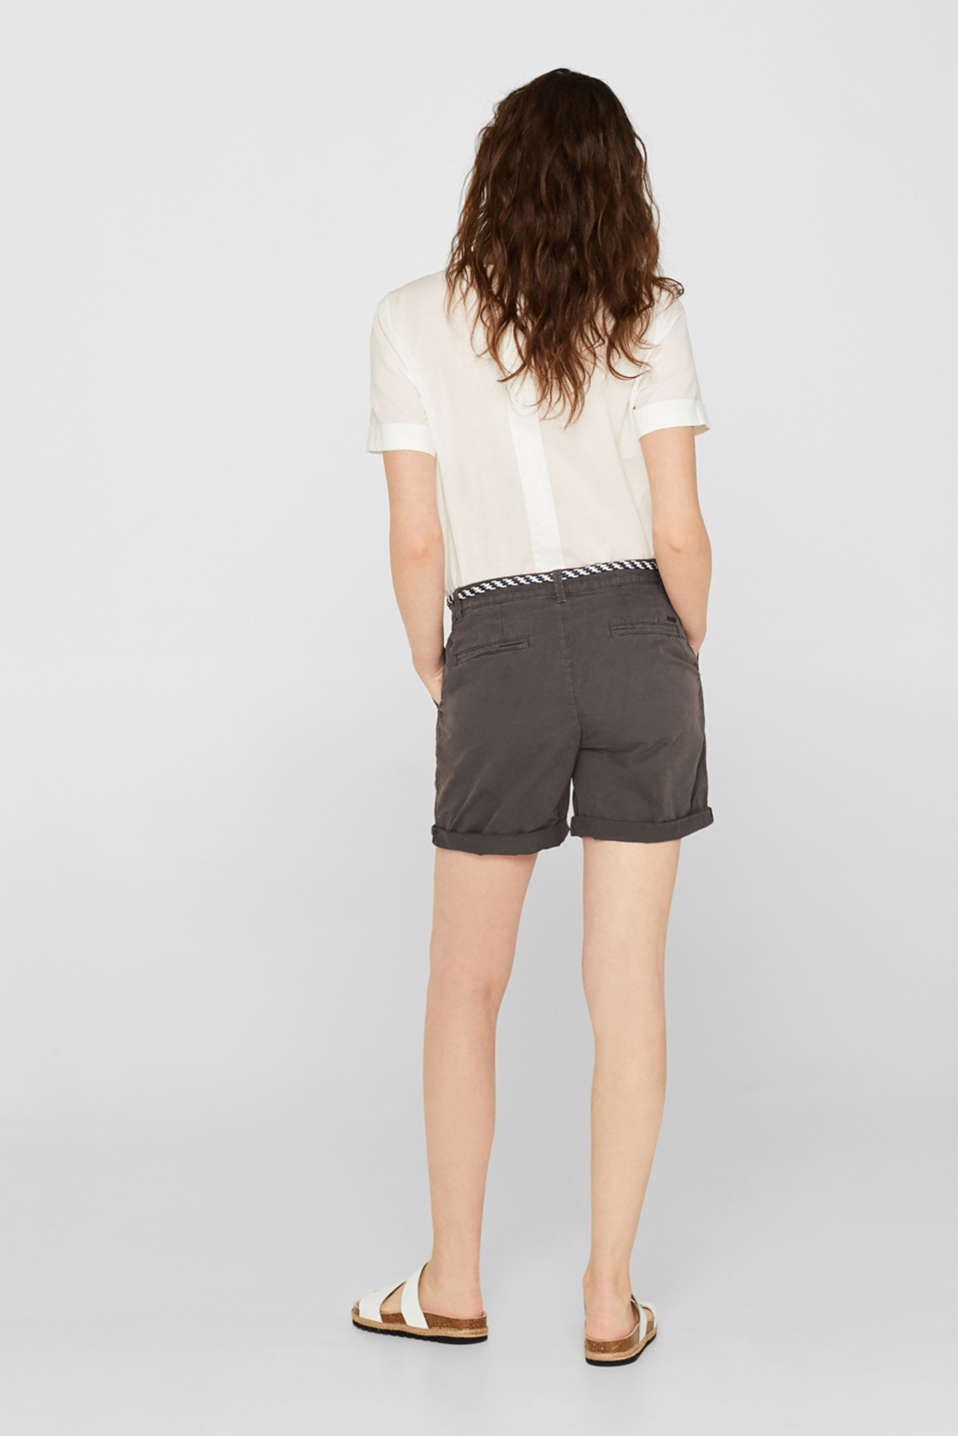 Shorts in a garment-washed look, 100% cotton, DARK GREY, detail image number 3